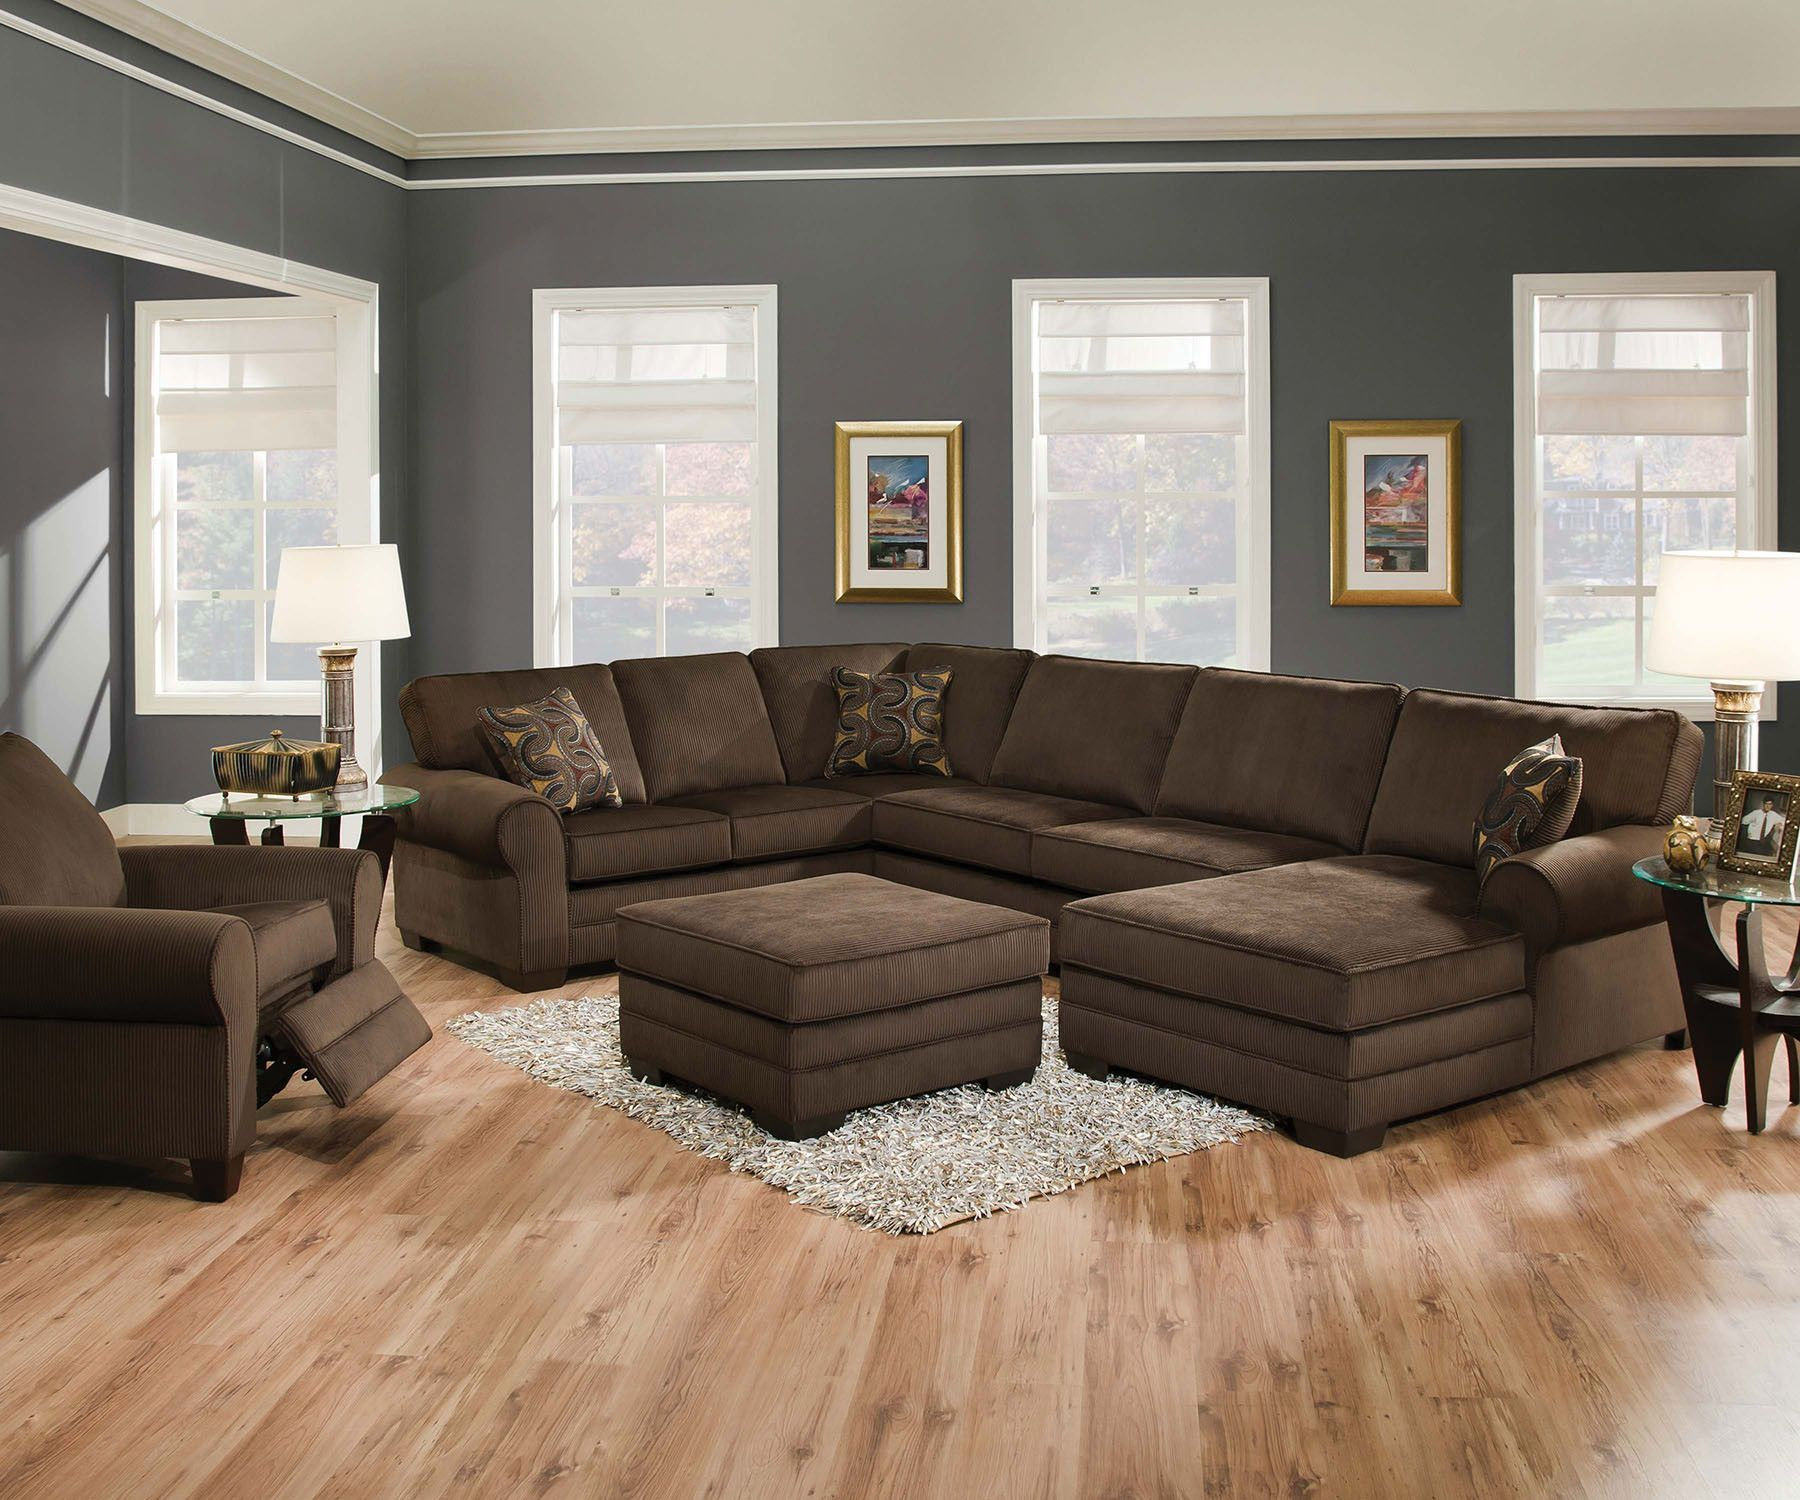 Delightful Tenner Sectional Sofa 50610 $1089 Features : Made In USA Loose Seat Cushion  Tight Back Cushion